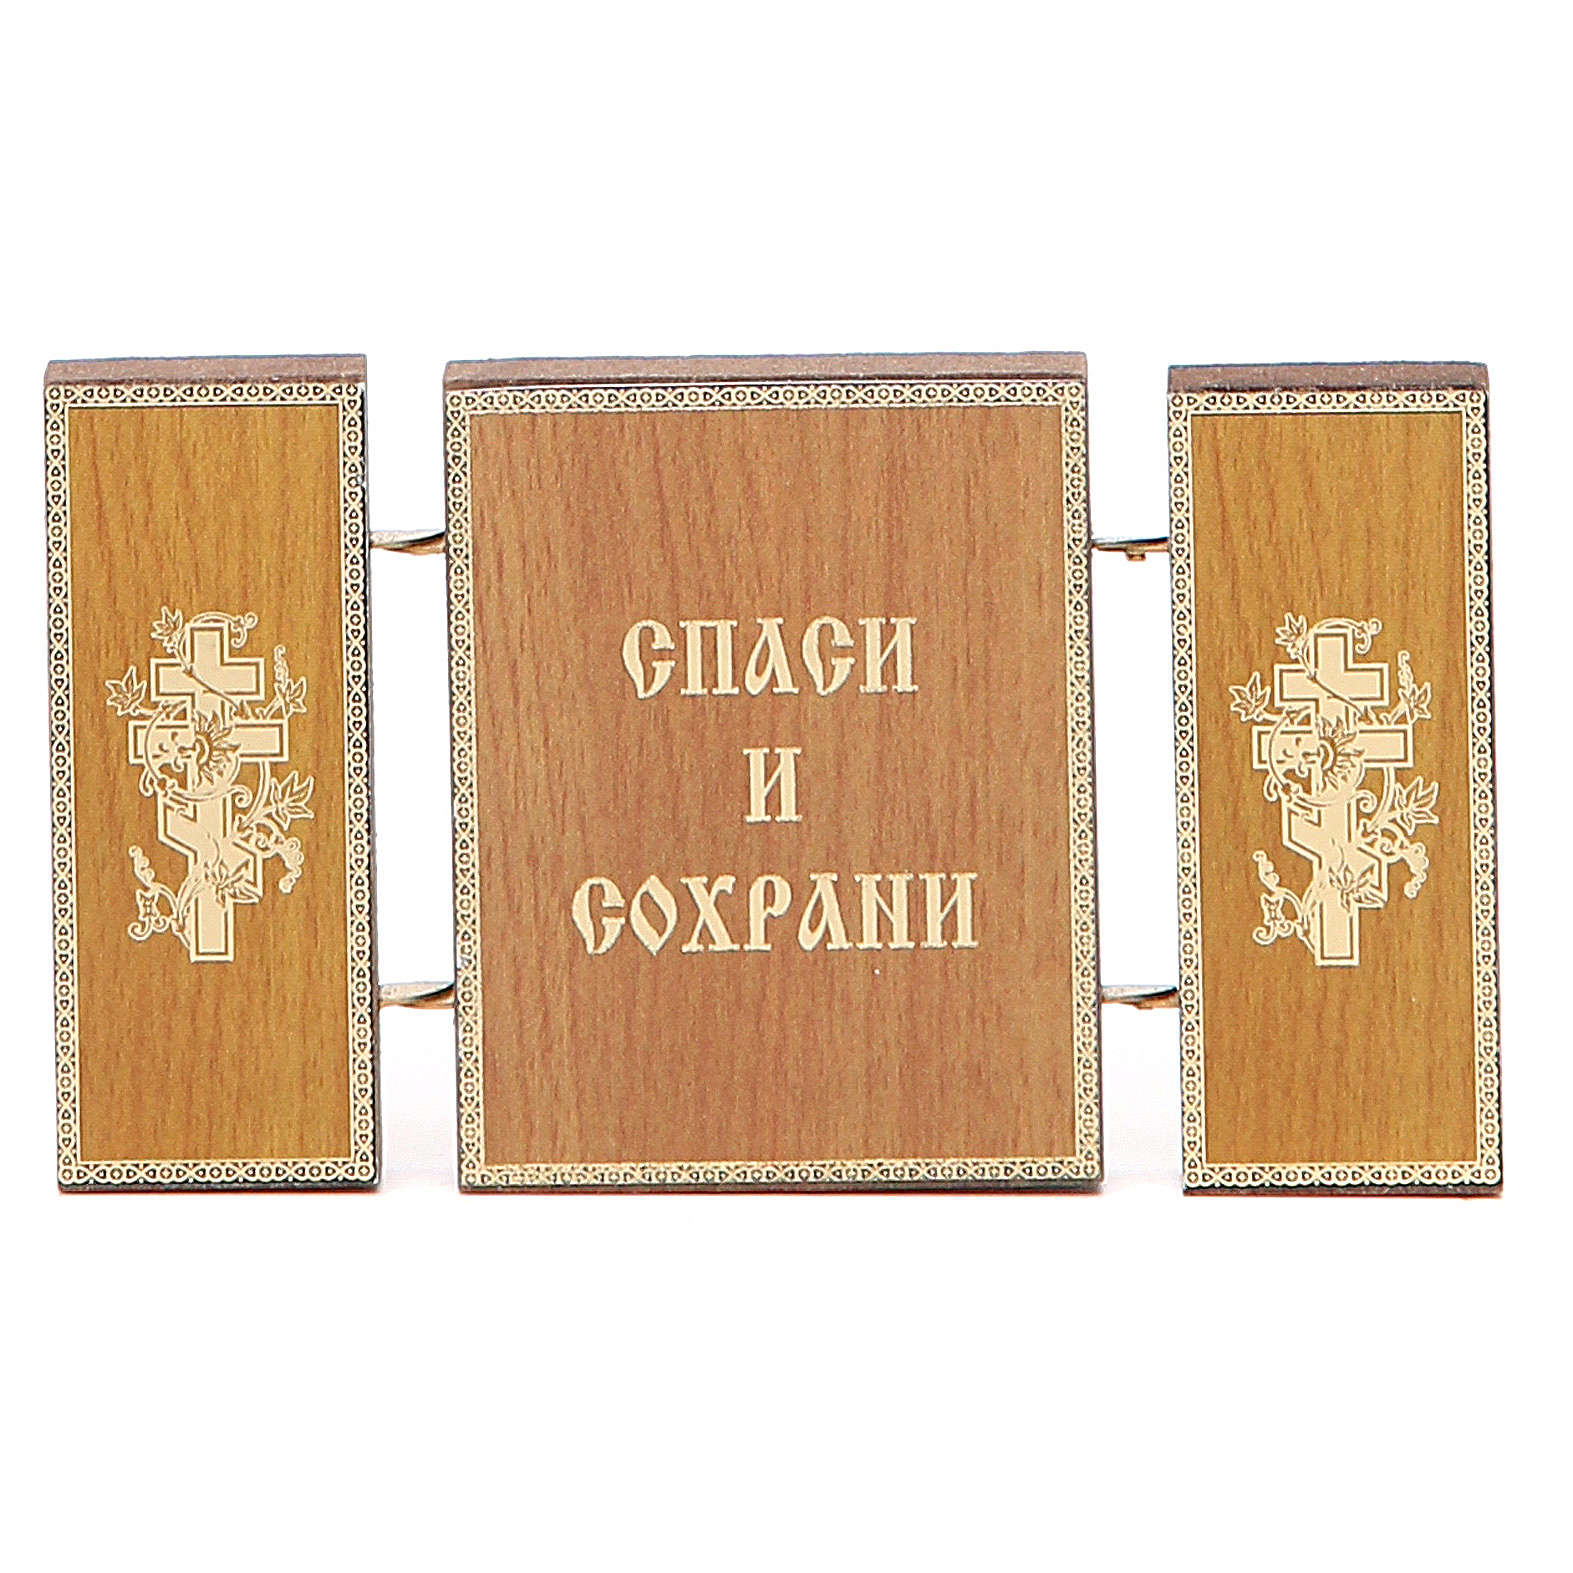 Triptych Russia White Lily application 9,5x5,5cm 3